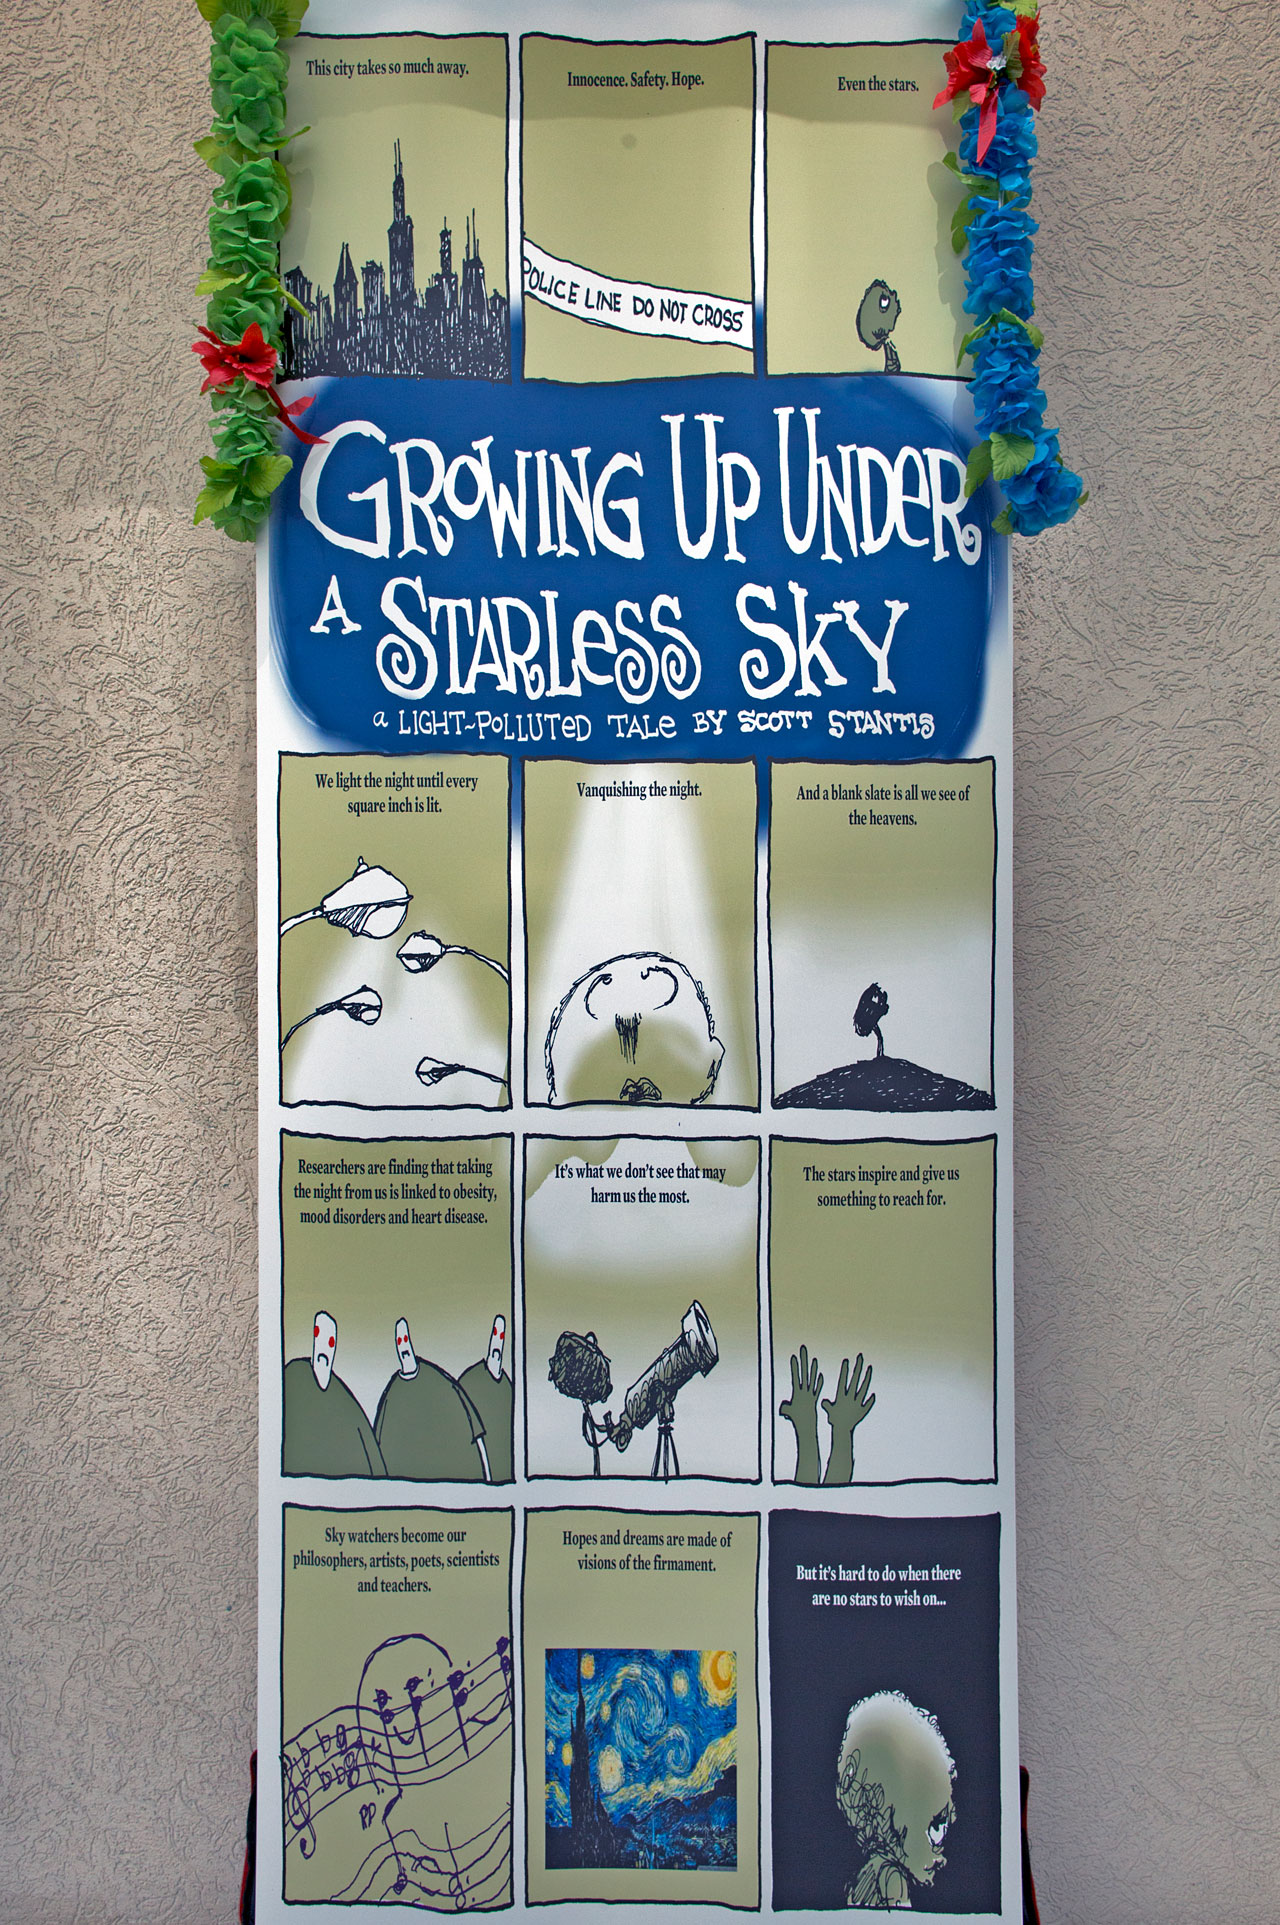 Growing Up Under a Starless Sky poster at IAU XXIX General Assembly